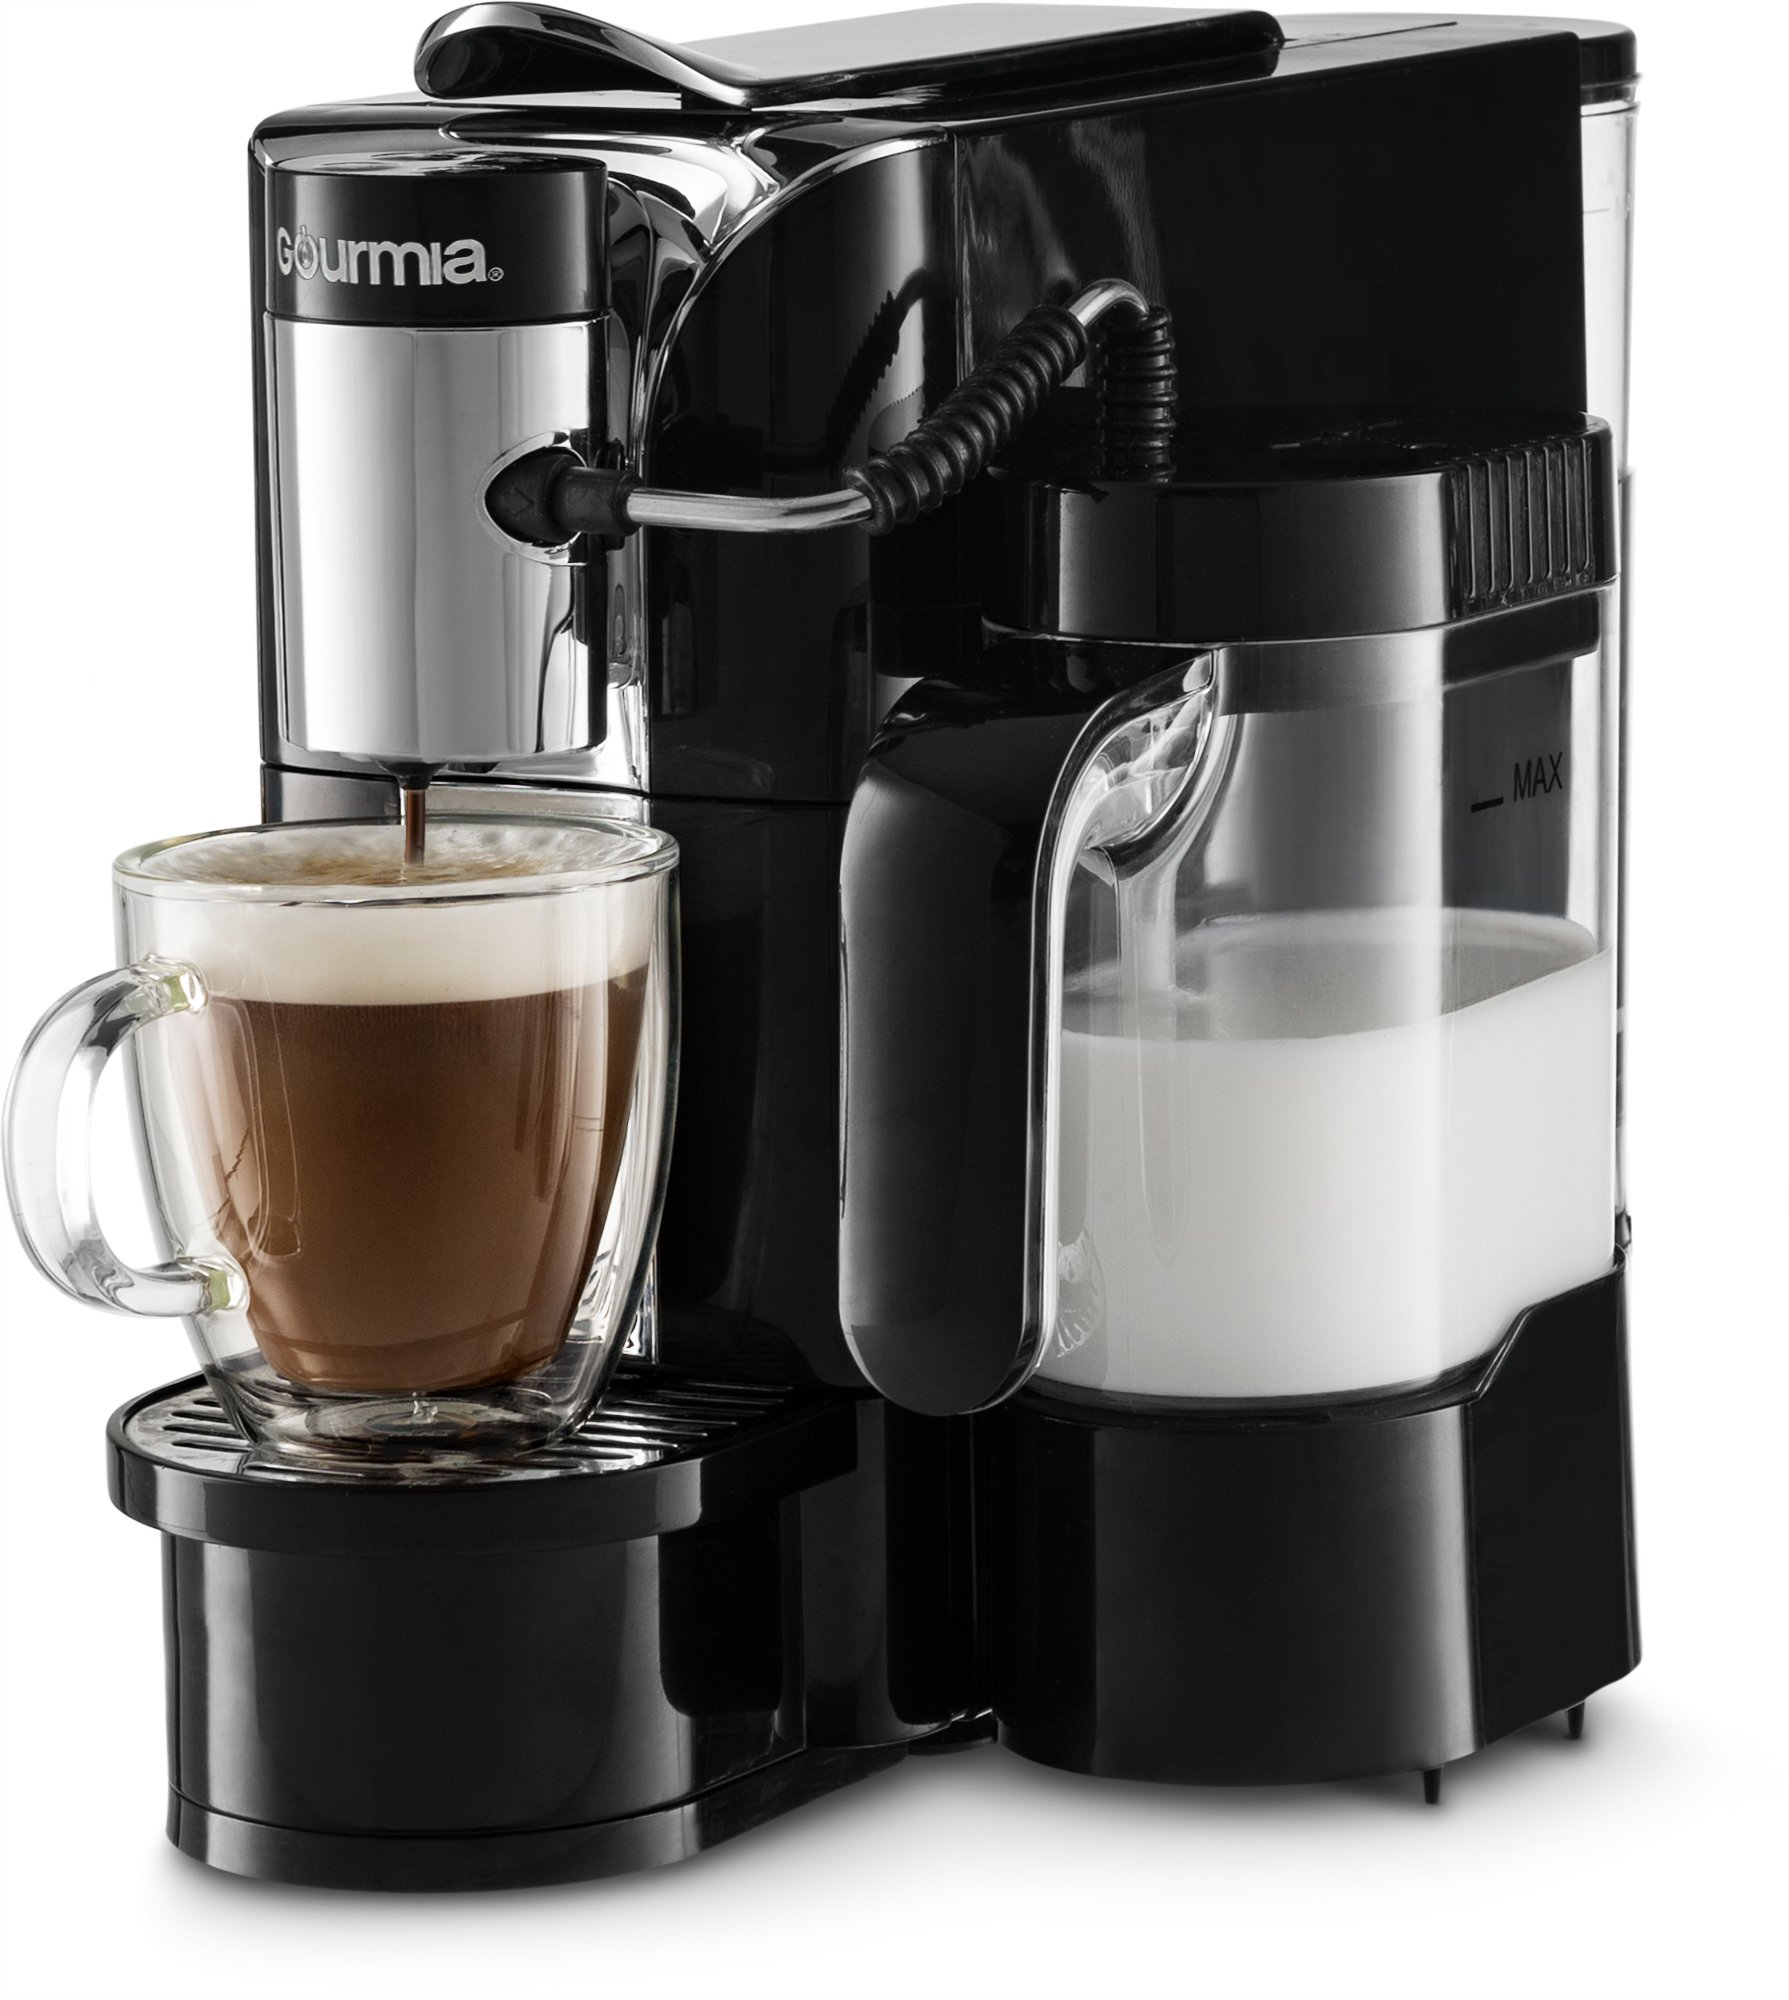 Gourmia GCM5500 - One Touch Automatic Espresso Cappuccino & Latte Maker Coffee Machine - Brew, Froth Milk, and Mix Into Cup with the Push of One Button- Nespresso Compatible by Gourmia (Image #1)